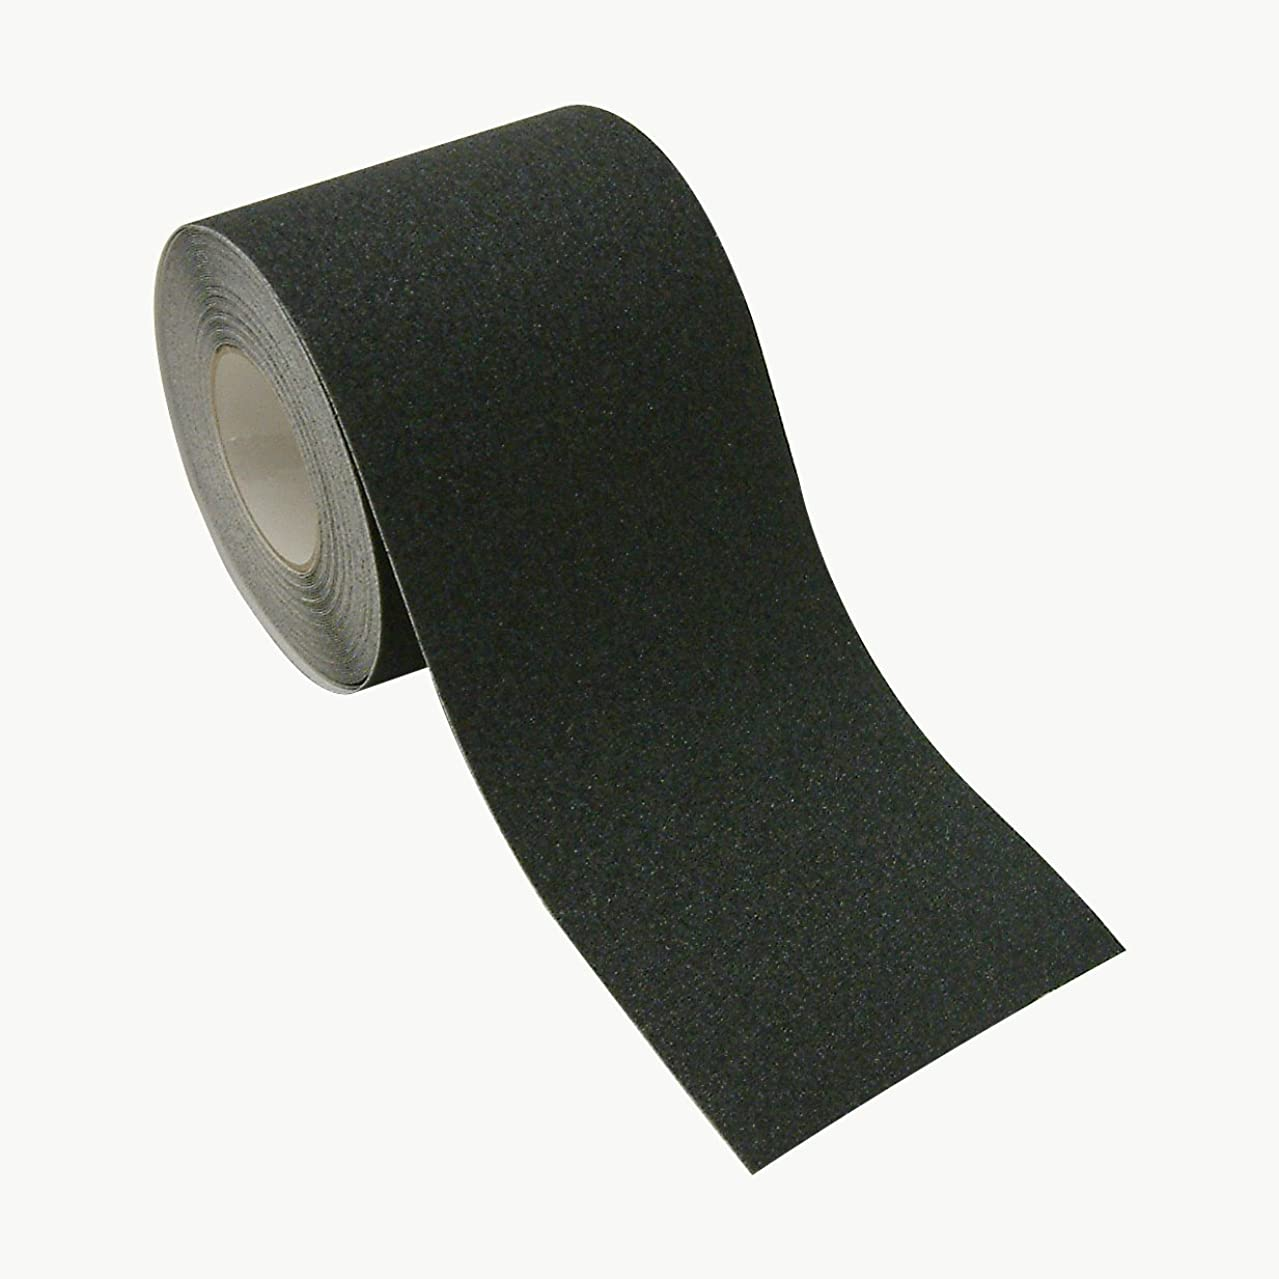 JVCC NS-2A Premium Non-Skid Tape: 6 in. x 60 ft. (Black)